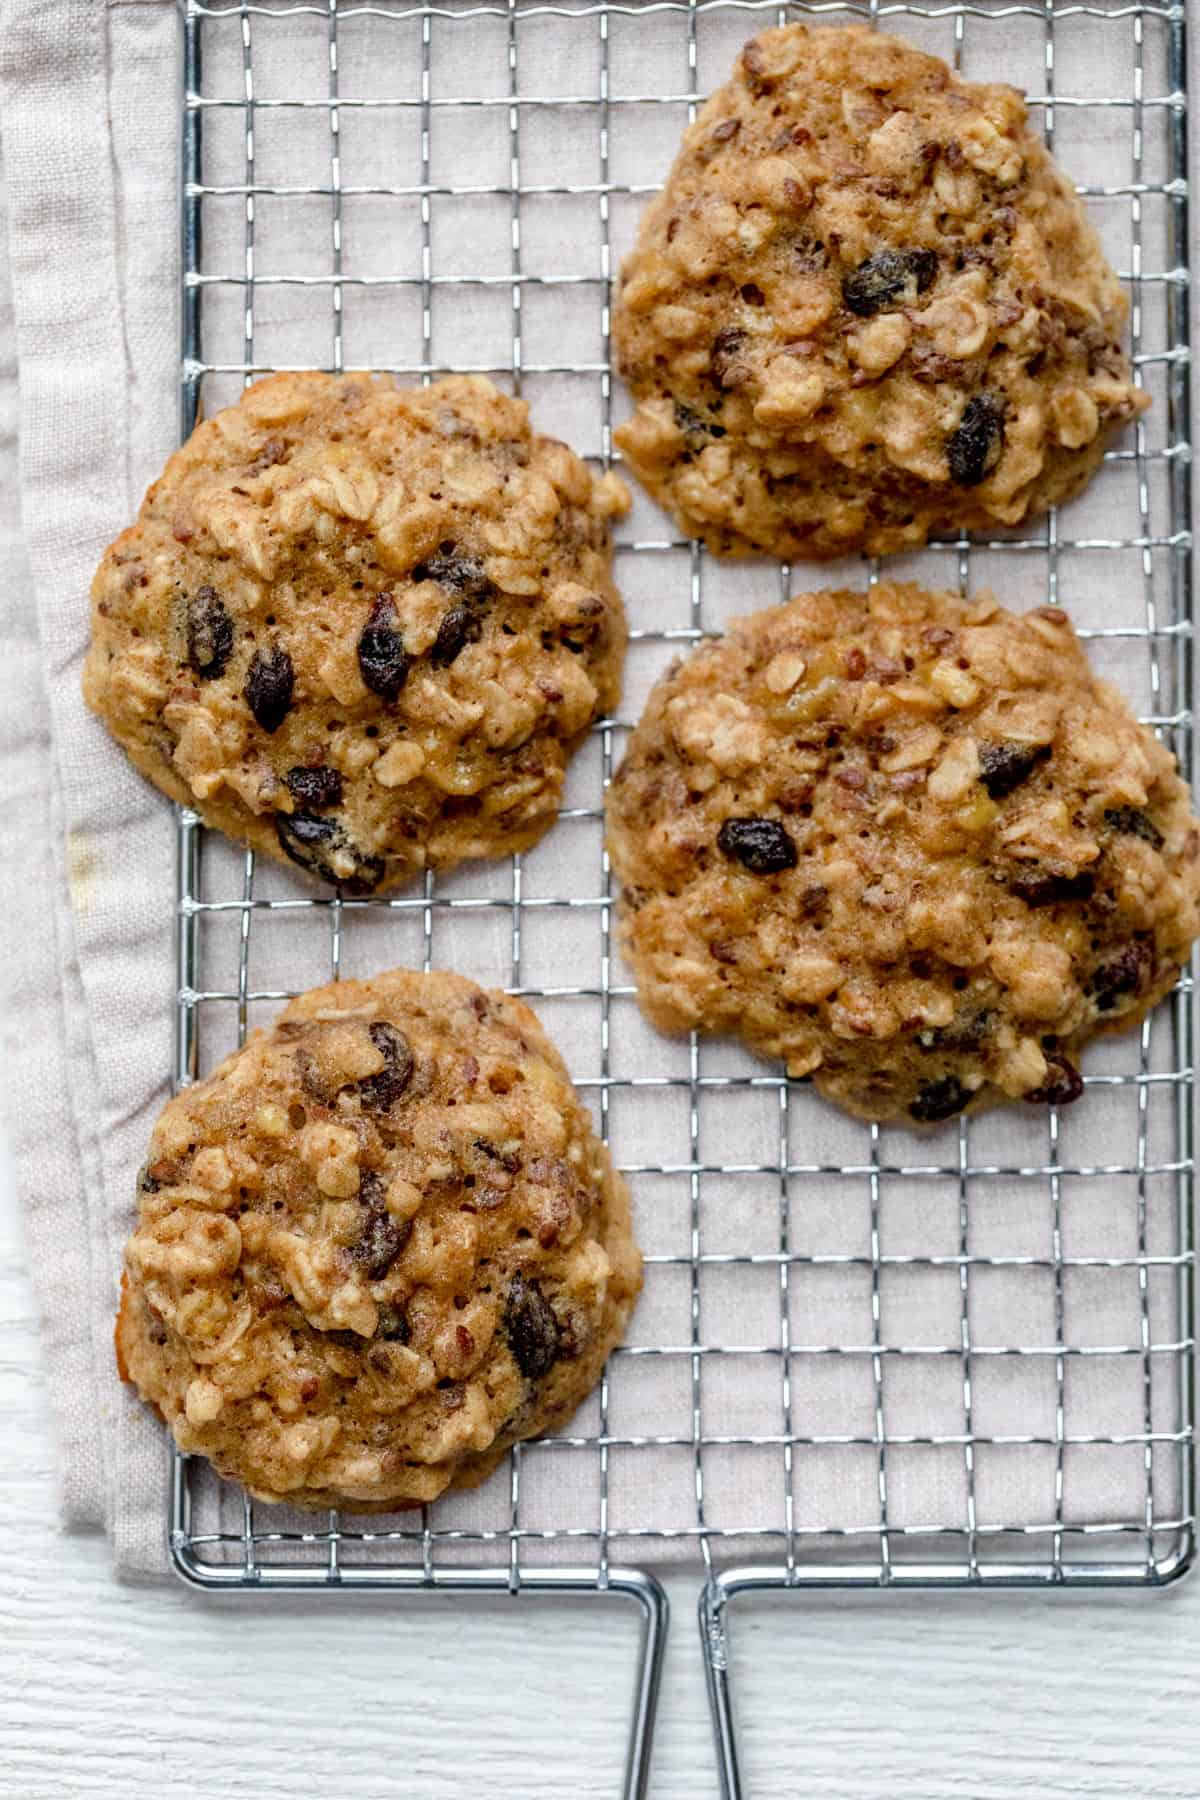 4 large oatmeal breakfast cookies on wire rack cooling